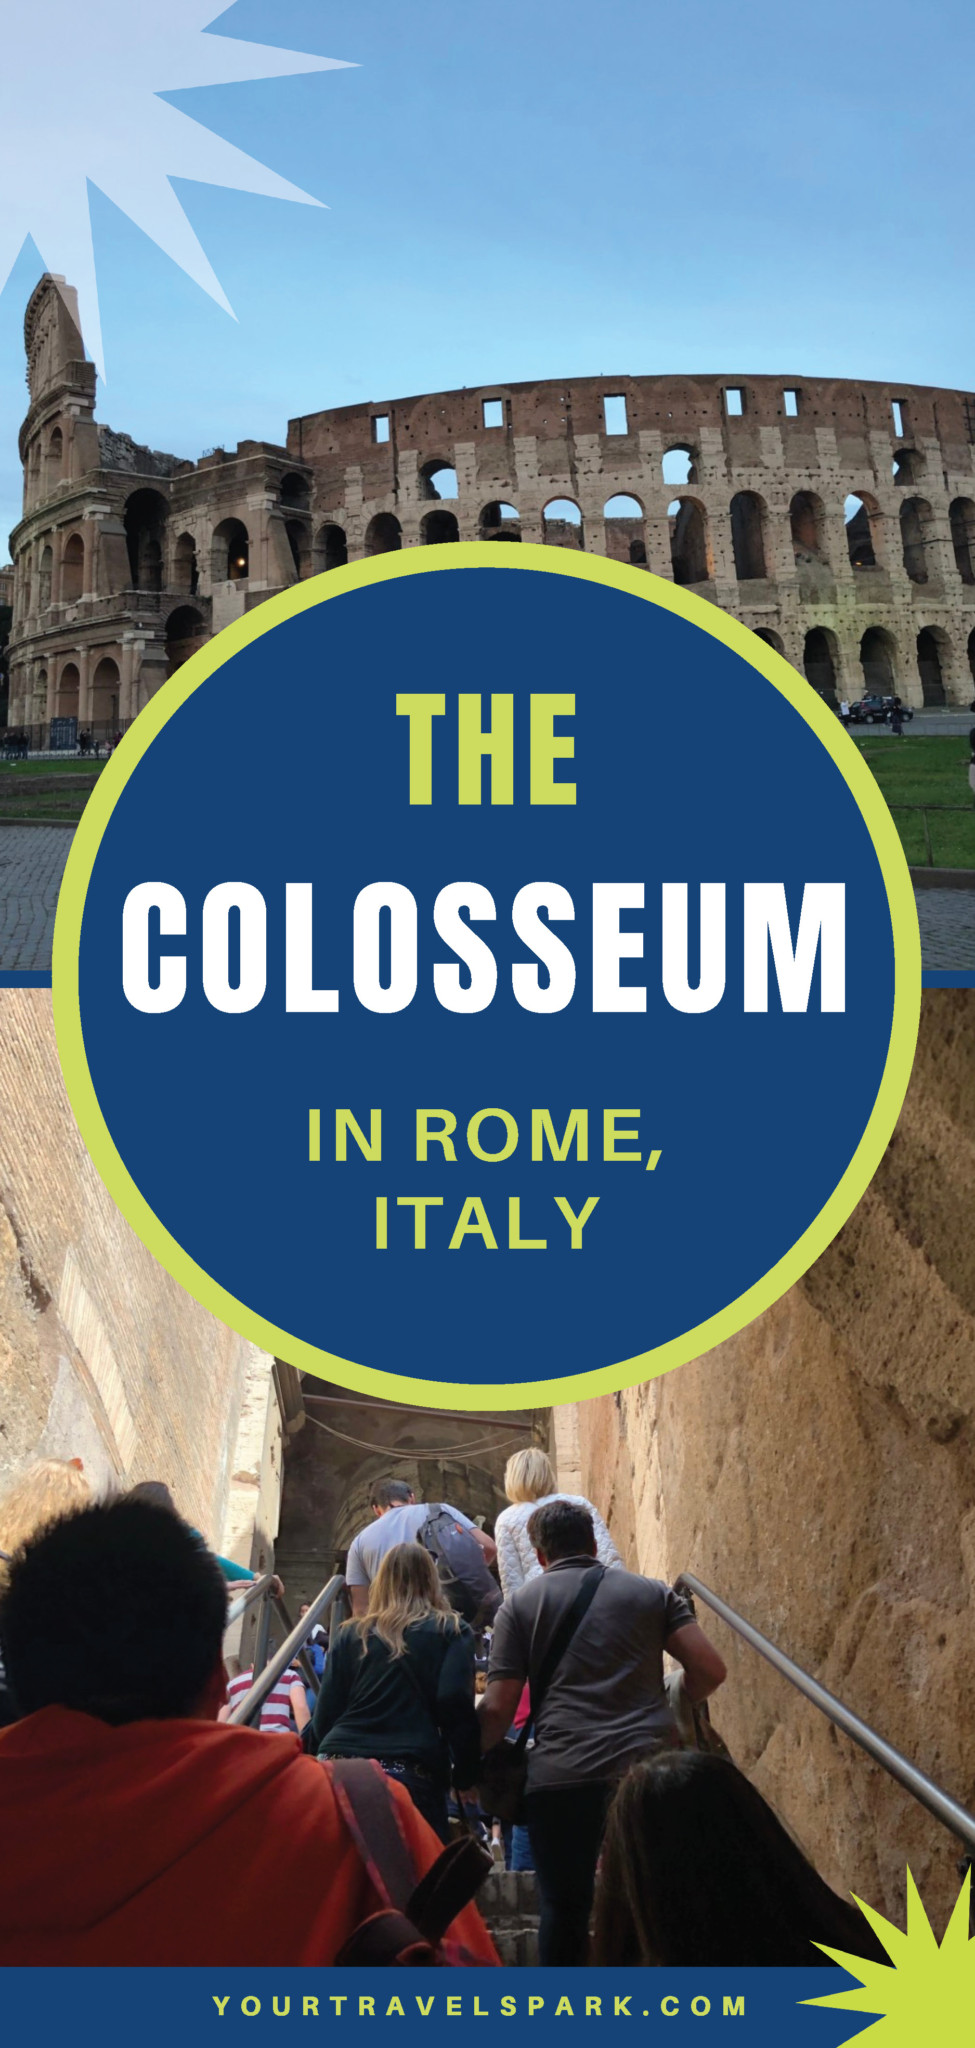 Visiting the Colosseum in Rome, Italy is a bucket list item for sure. Here is everything you need to know about visiting the Colosseum, including tickets and schedules. #colosseum #thecolosseum #colosseo #thecolosseo #colosseumrome #colosseumromeitaly #colosseumitaly #colosseoroma #colosseorome #roma #rome #italy #italia #romeitaly #romaitaly